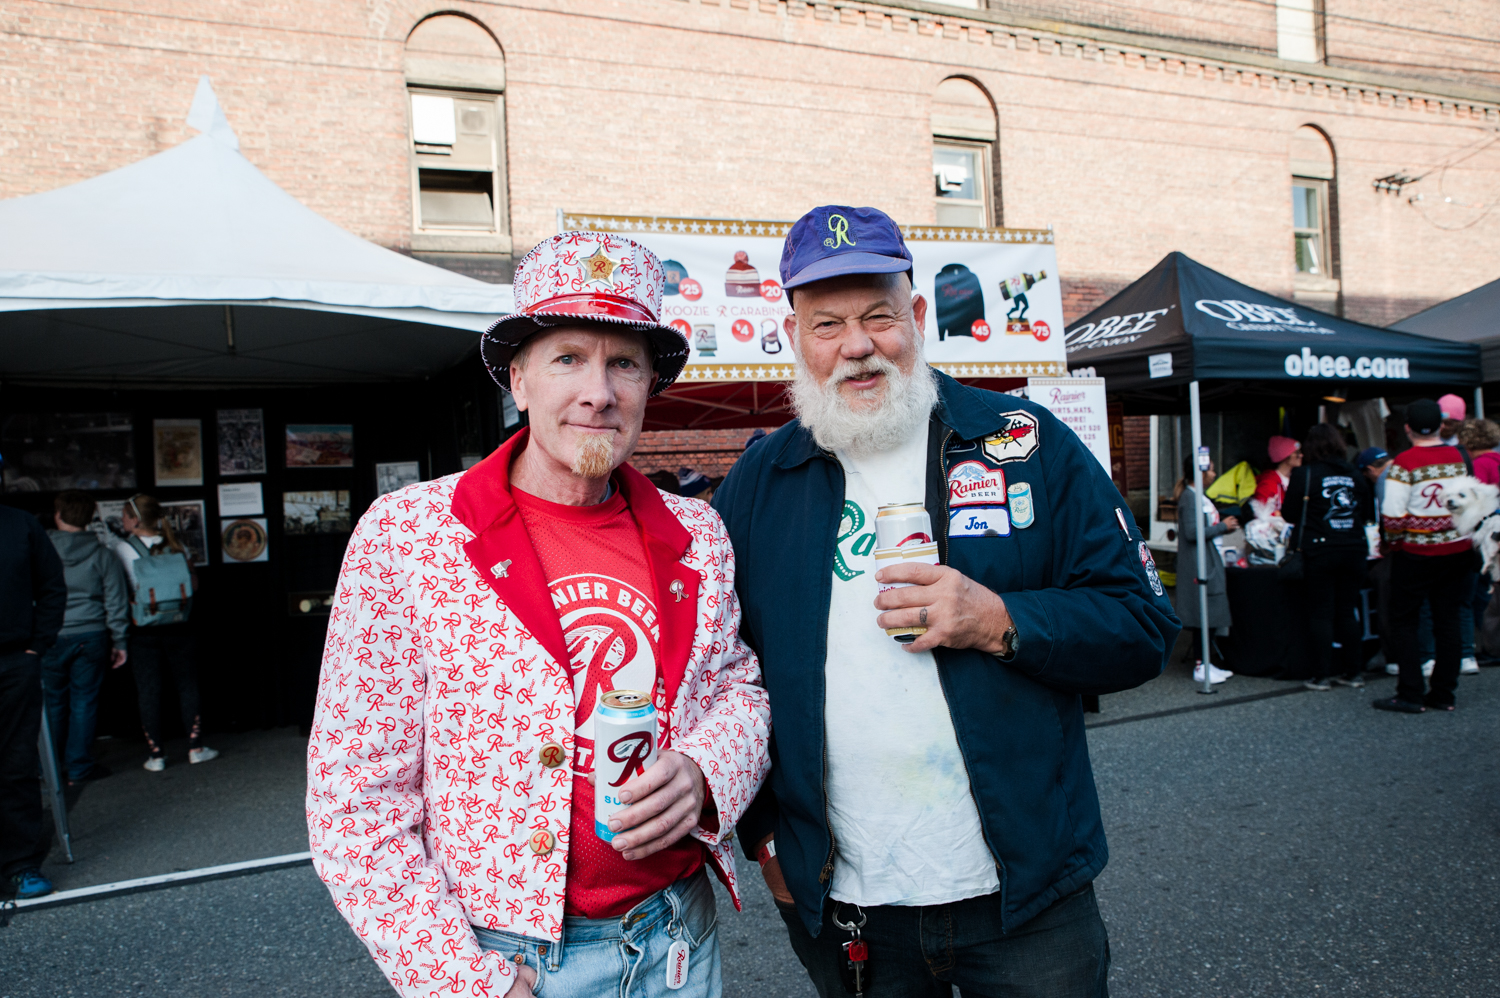 <p>Beer enthusiasts were treated to a free event in Georgetown to celebrate 'R Day', an annual celebration of Rainier Beer's rich heritage. The day is filled with community, music and awesome merchandise. Patrons donned clothes, hats, jackets, emblazoned with the iconic 'R', all the while sipping delicious local brews. (Image: Elizabeth Crook / Seattle Refined)</p>